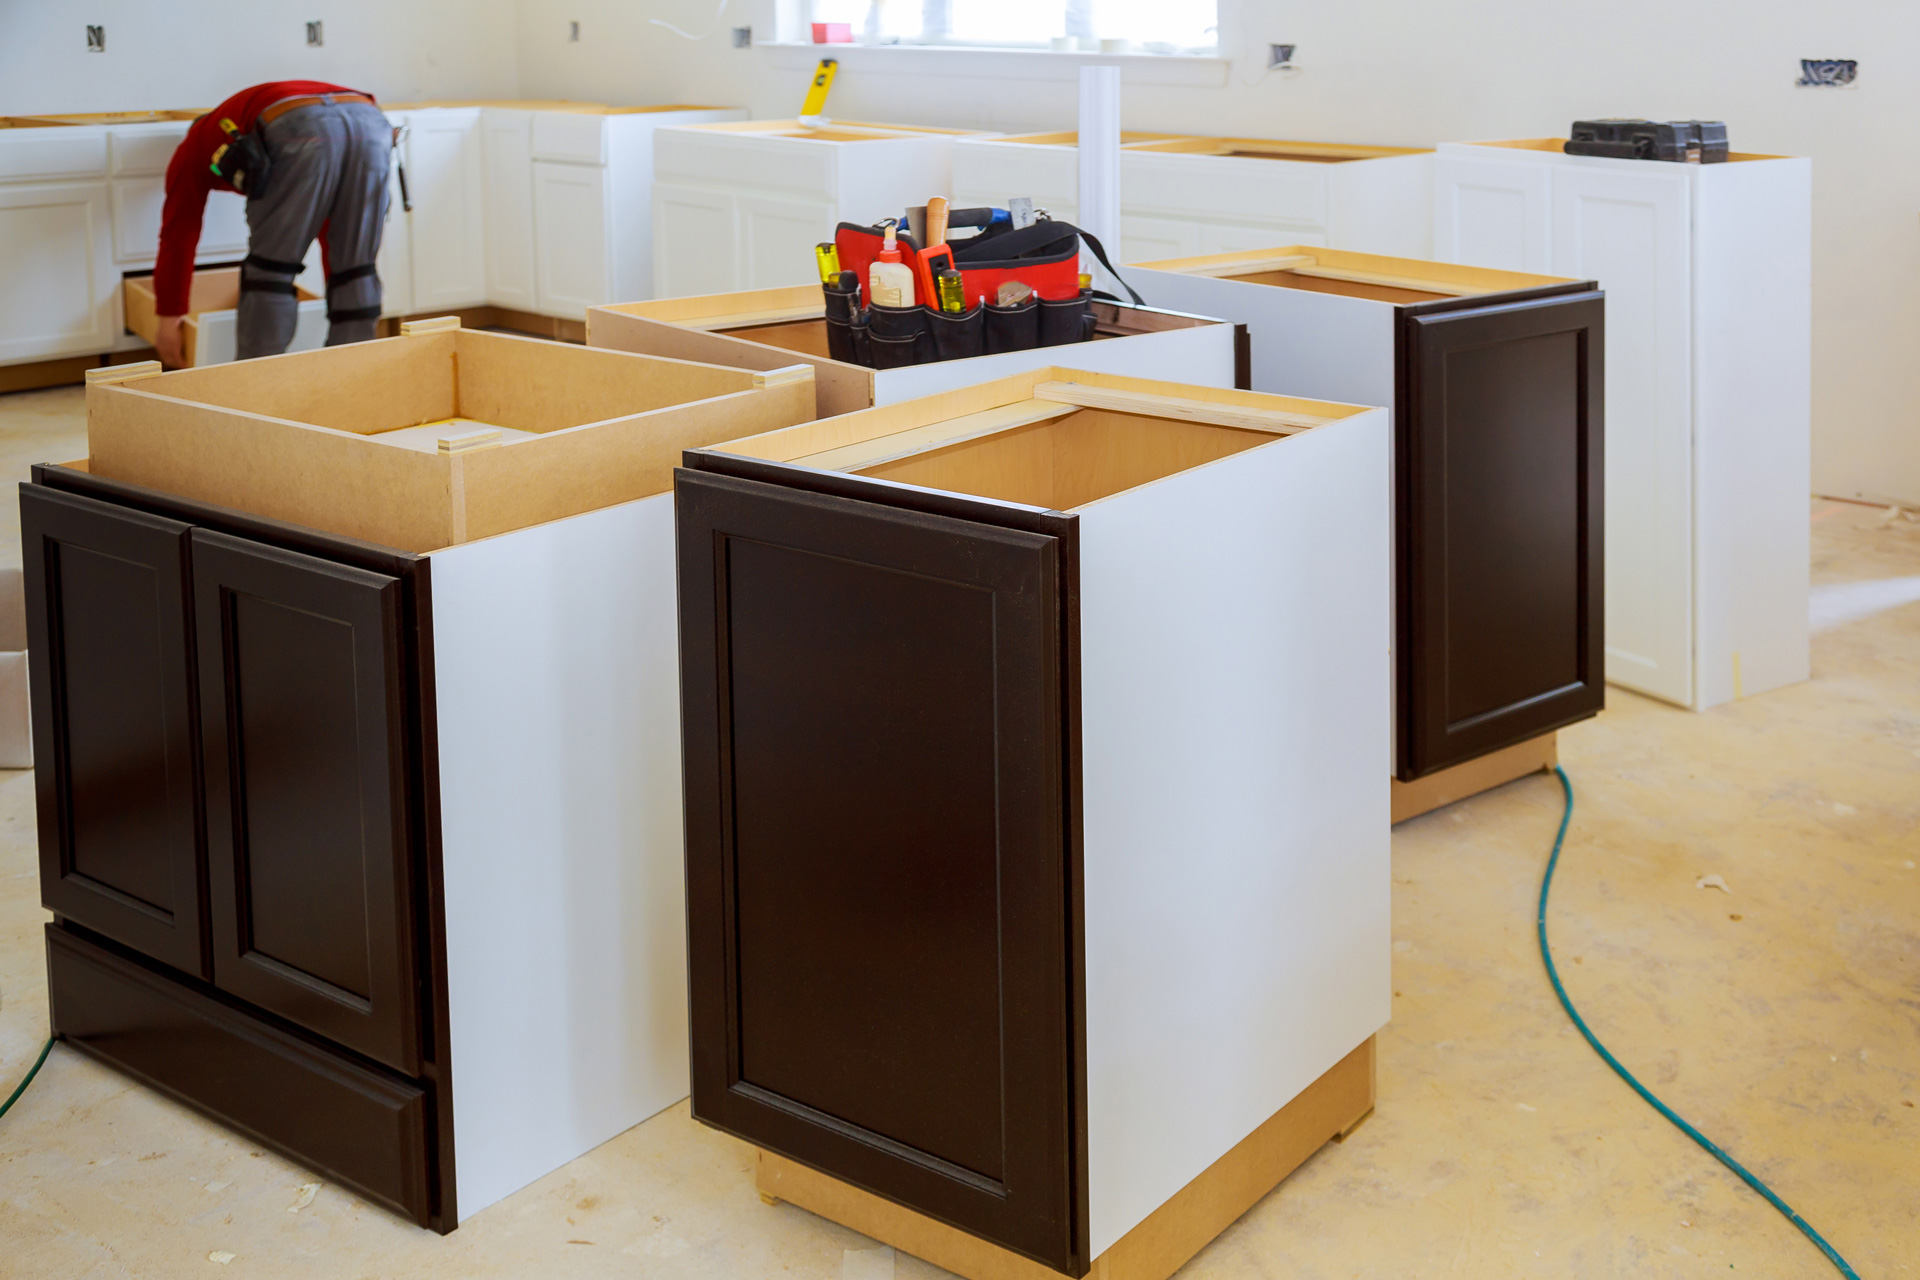 Quality cabinets not available in retail stores